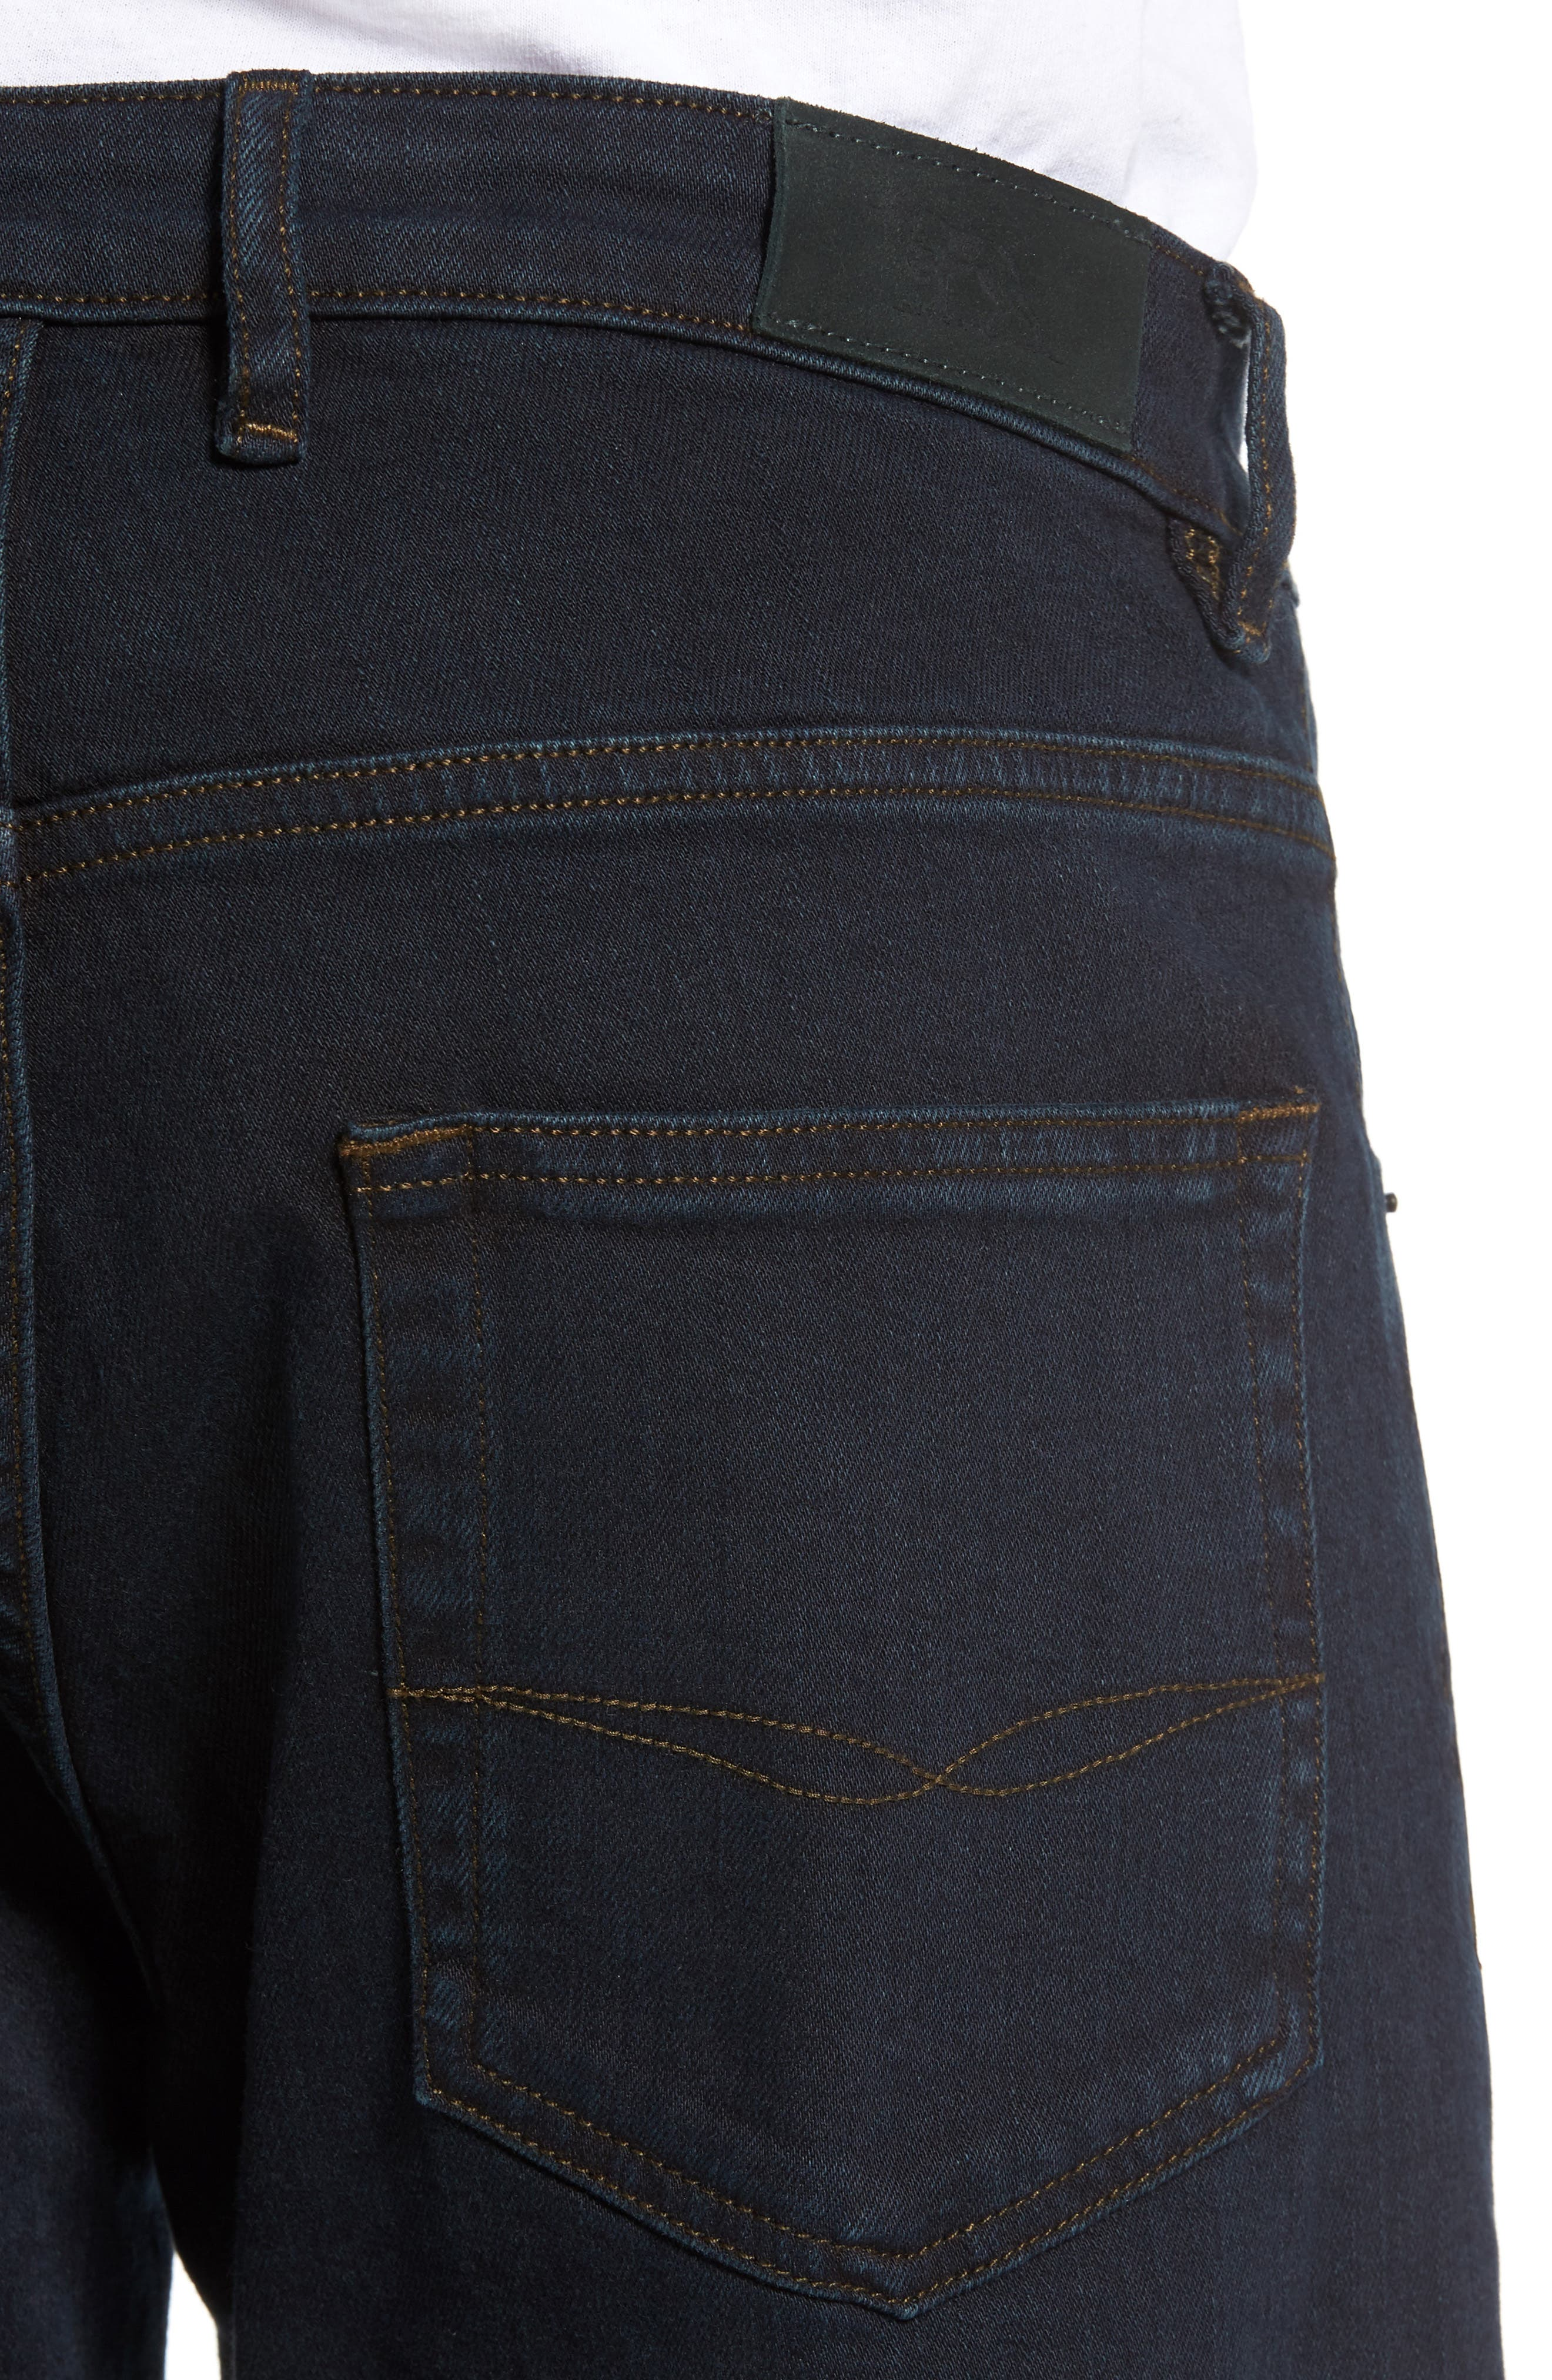 Cobham Relaxed Fit Jeans,                             Alternate thumbnail 4, color,                             BLUE BLACK